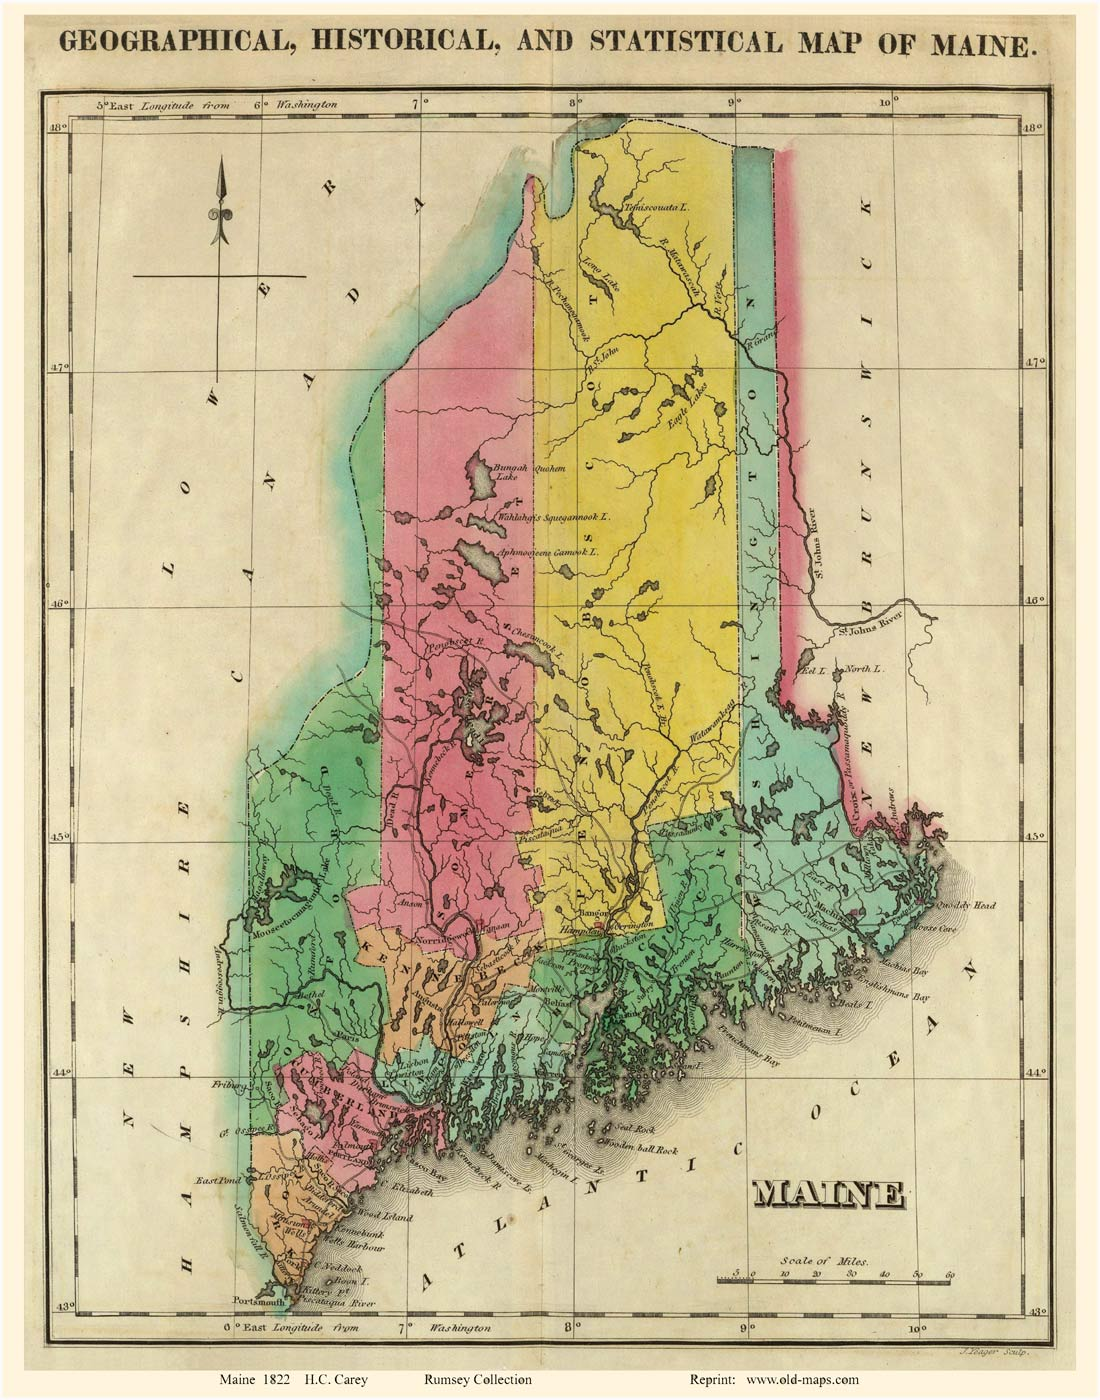 State Map Of Maine.Old Maps Of Maine Small State Maps